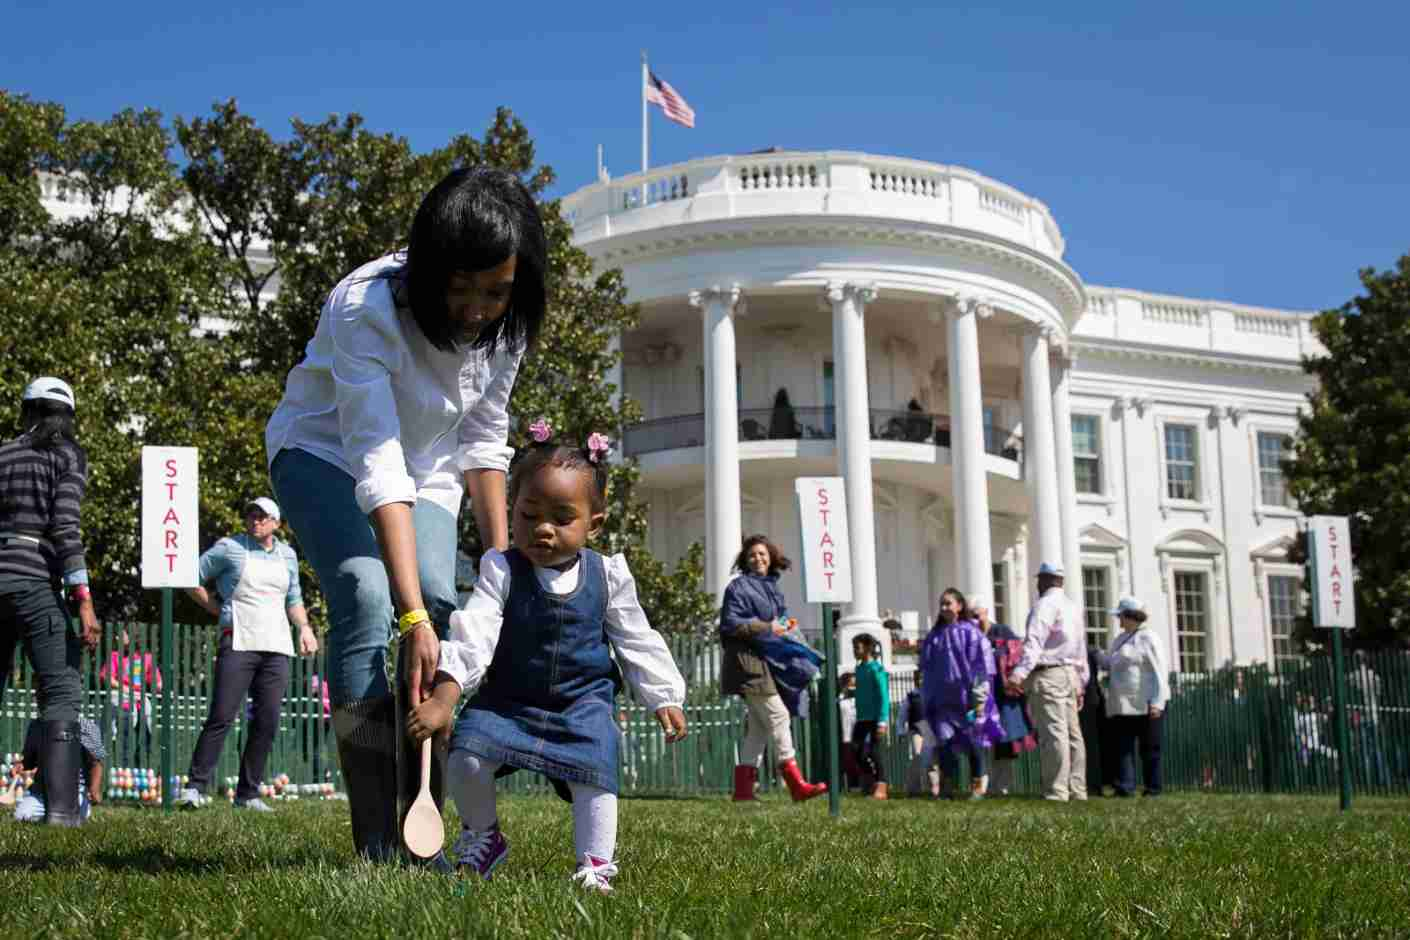 WASHINGTON, DC - MARCH 28: One year-old Ava Johnson plays a game during the annual White House Easter Egg Roll on the South Lawn of the White House March 28, 2016 in Washington, DC. The tradition dates back to 1878 when President Rutherford B. Hayes allowed children to roll eggs on the South Lawn. (Photo by Drew Angerer/Getty Images)